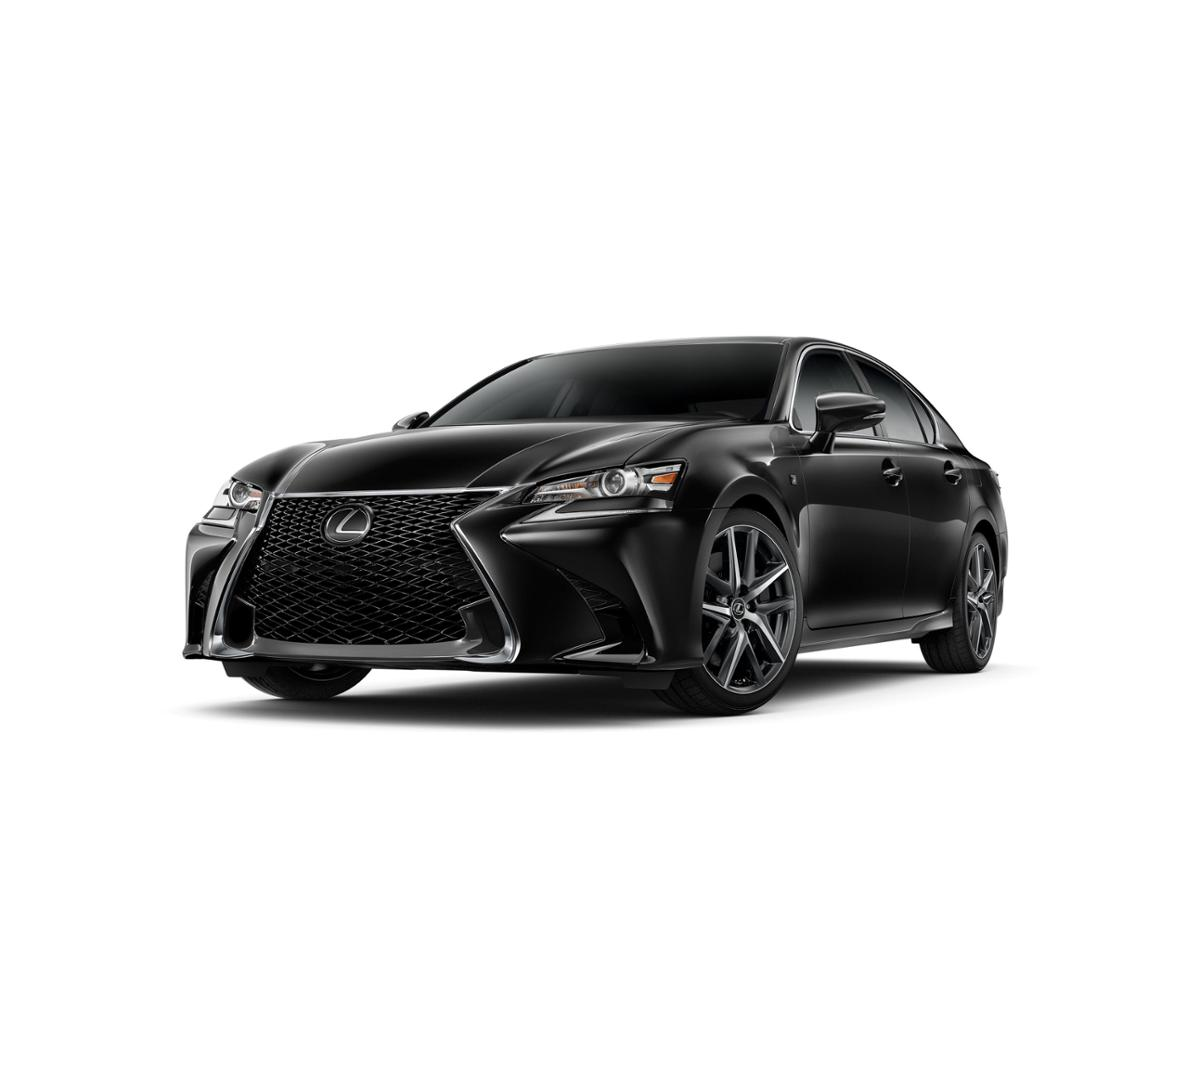 2019 Lexus GS 350 Vehicle Photo in Danvers, MA 01923